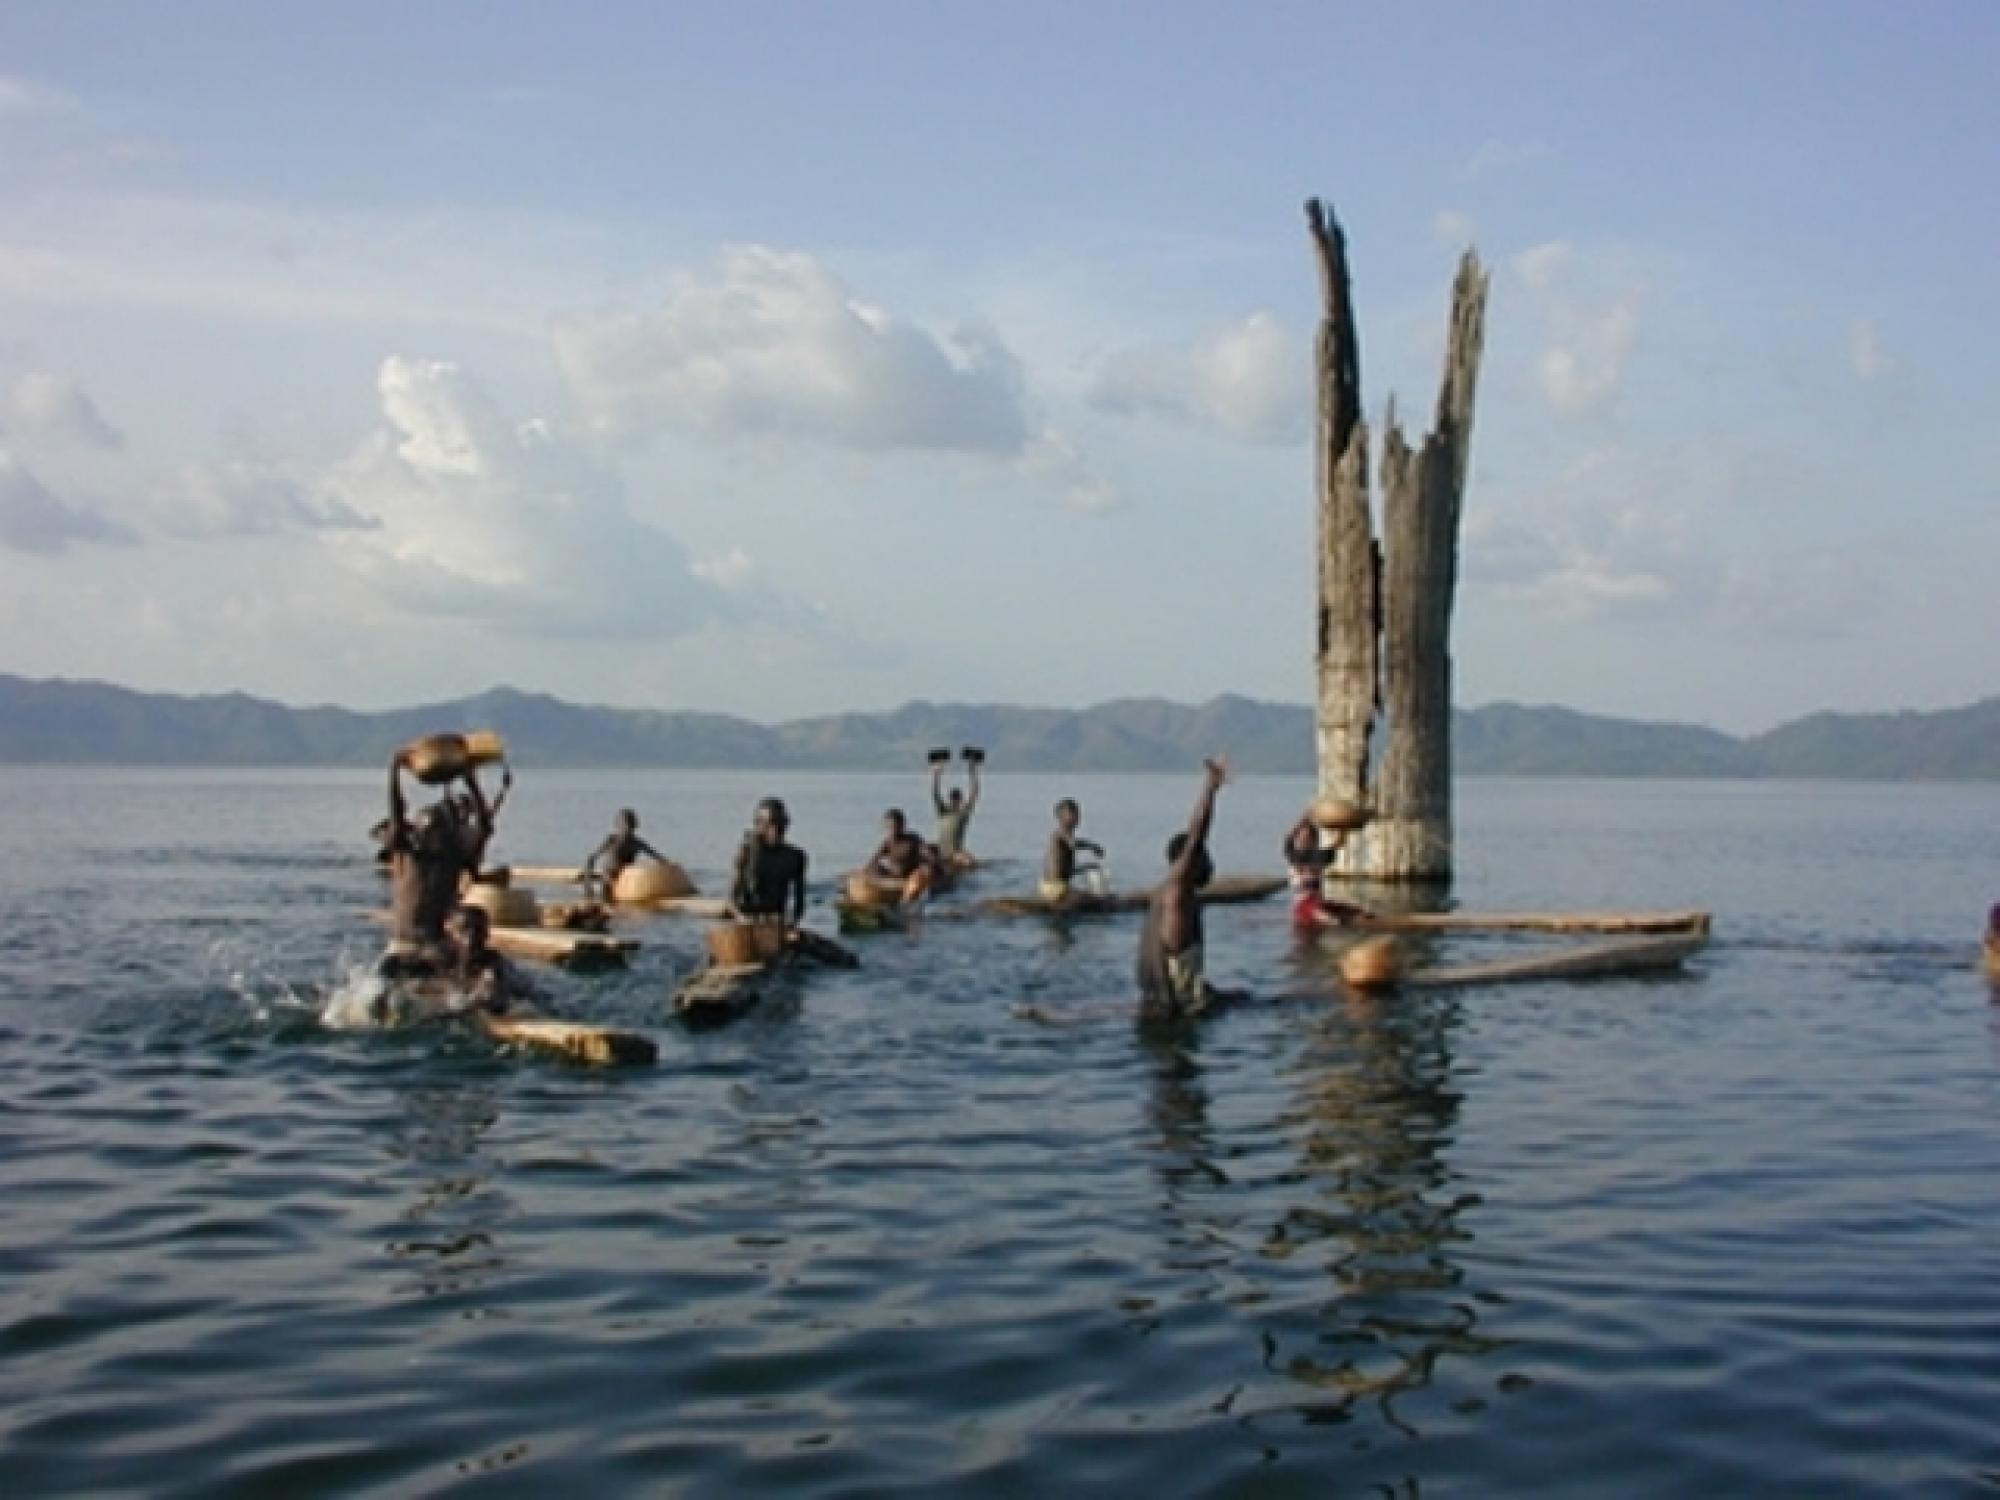 Boys from nearby villages practice traditional fishing methods on Lake Bosumtwi. Large tropical trees submerged in 15-20 meters of water provide evidence that severe, long-lasting droughts occurred just a few centuries ago.